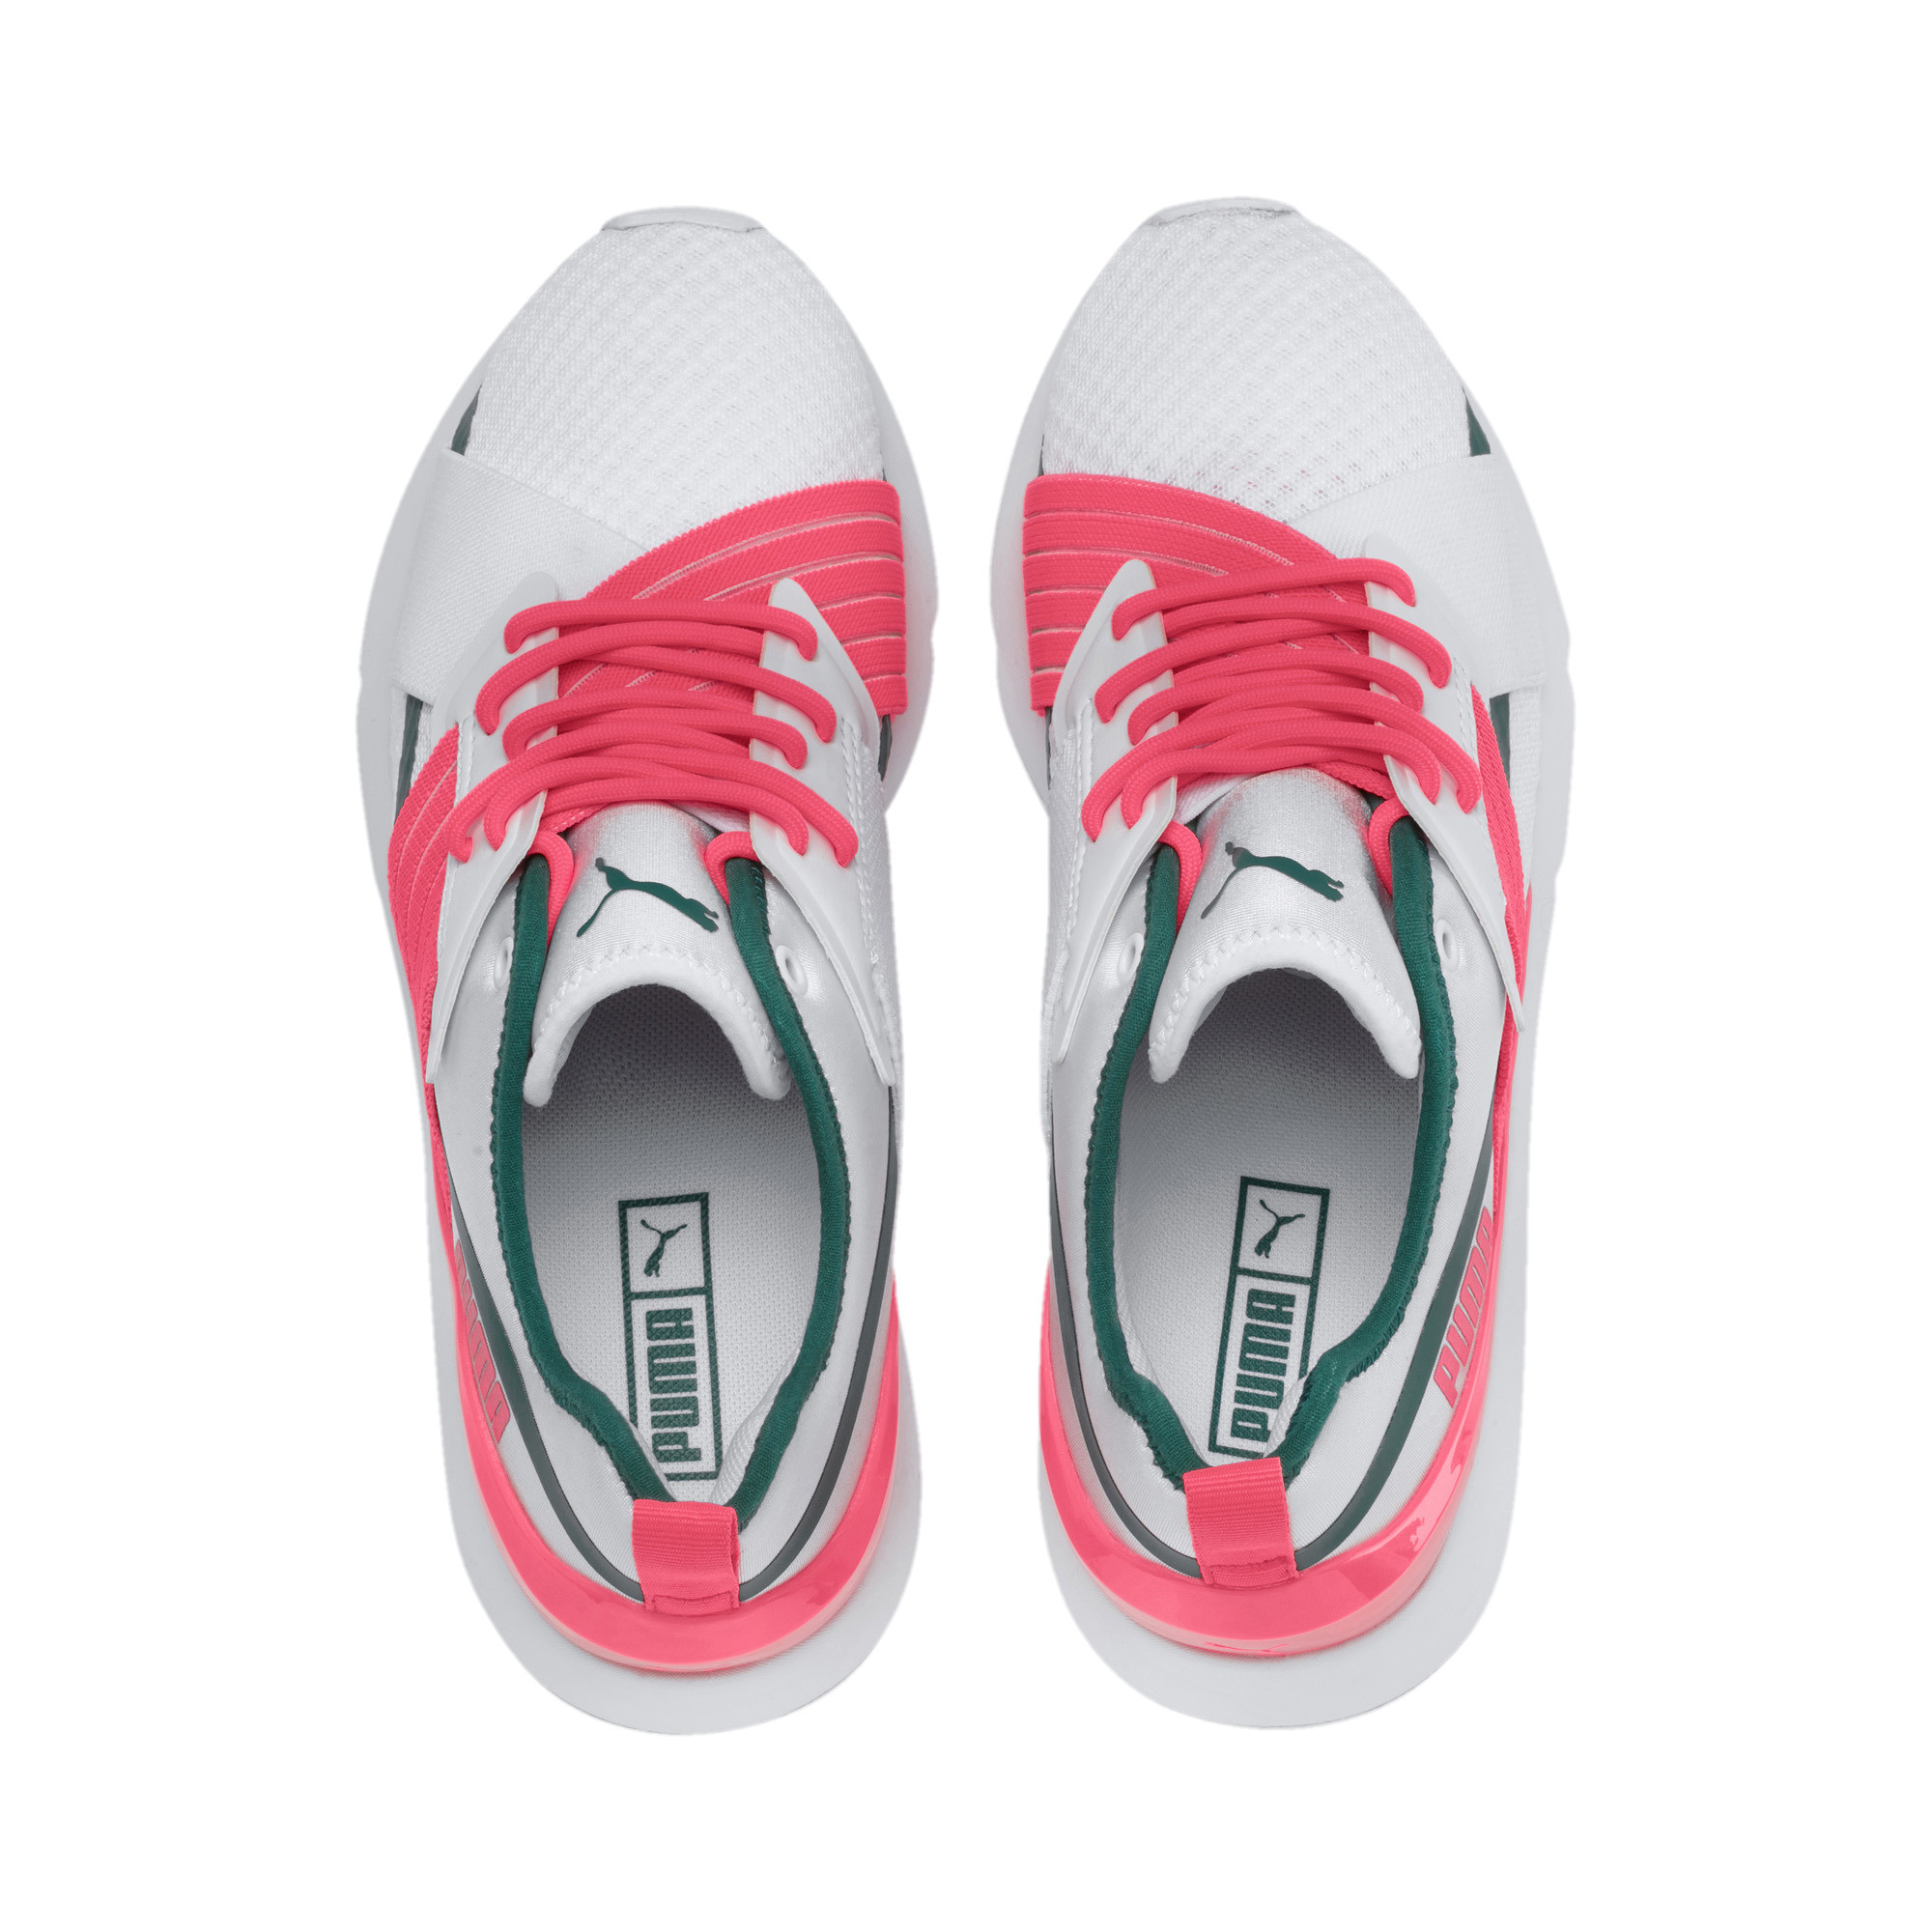 PUMA-Muse-X-2-Women-039-s-Sneakers-Women-Shoe-Evolution thumbnail 8